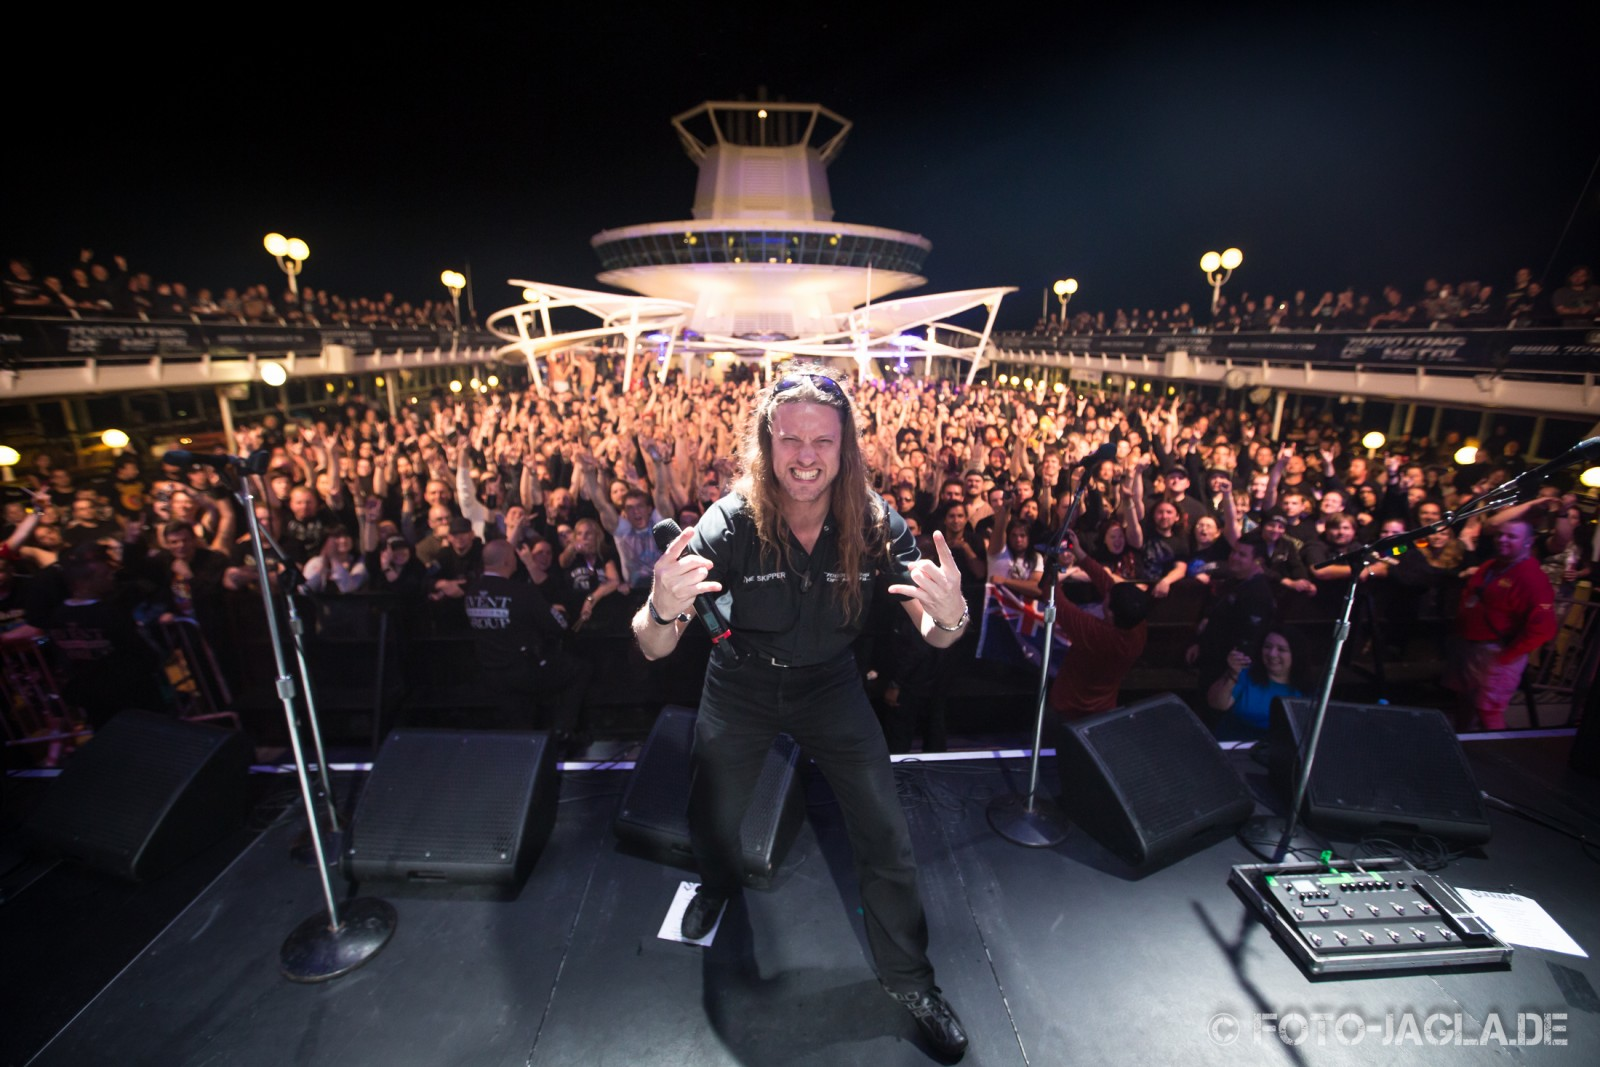 70000 Tons of Metal 2013 ::. Andy Piller - The Skippers Thank You ::. http://www.foto-jagla.de